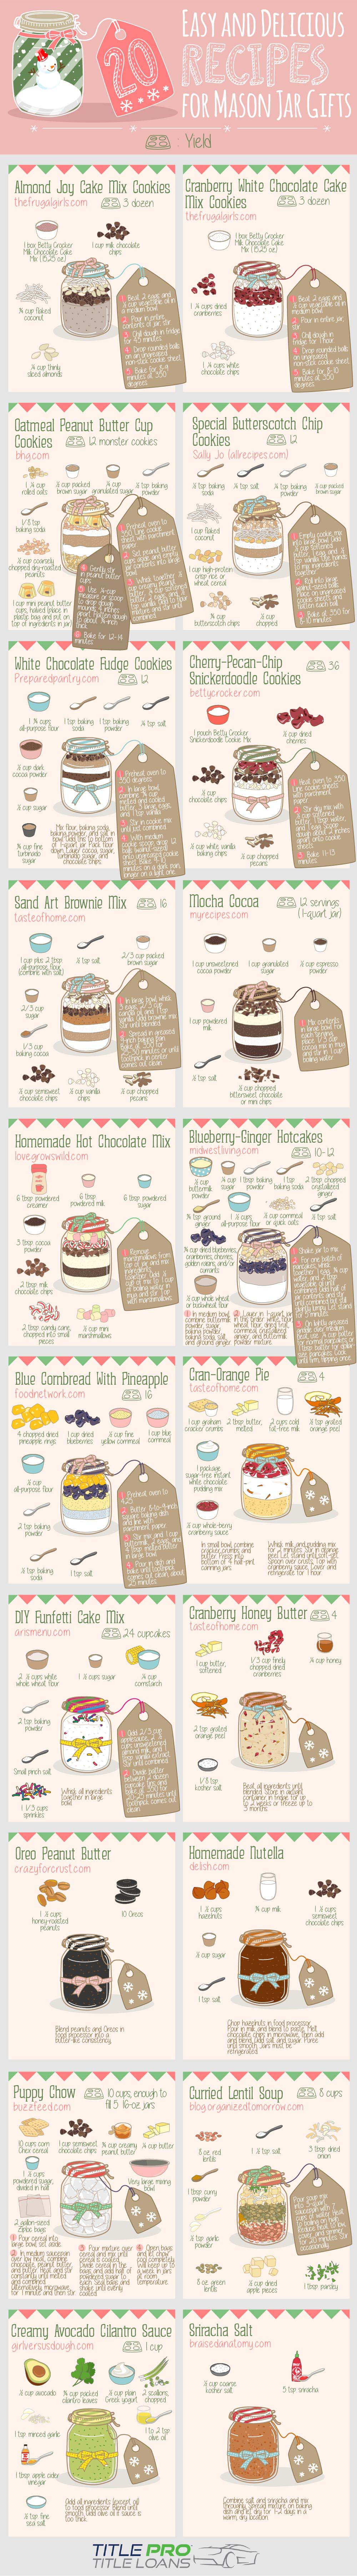 20 Easy & Delicious Recipes for Mason Jar Gifts